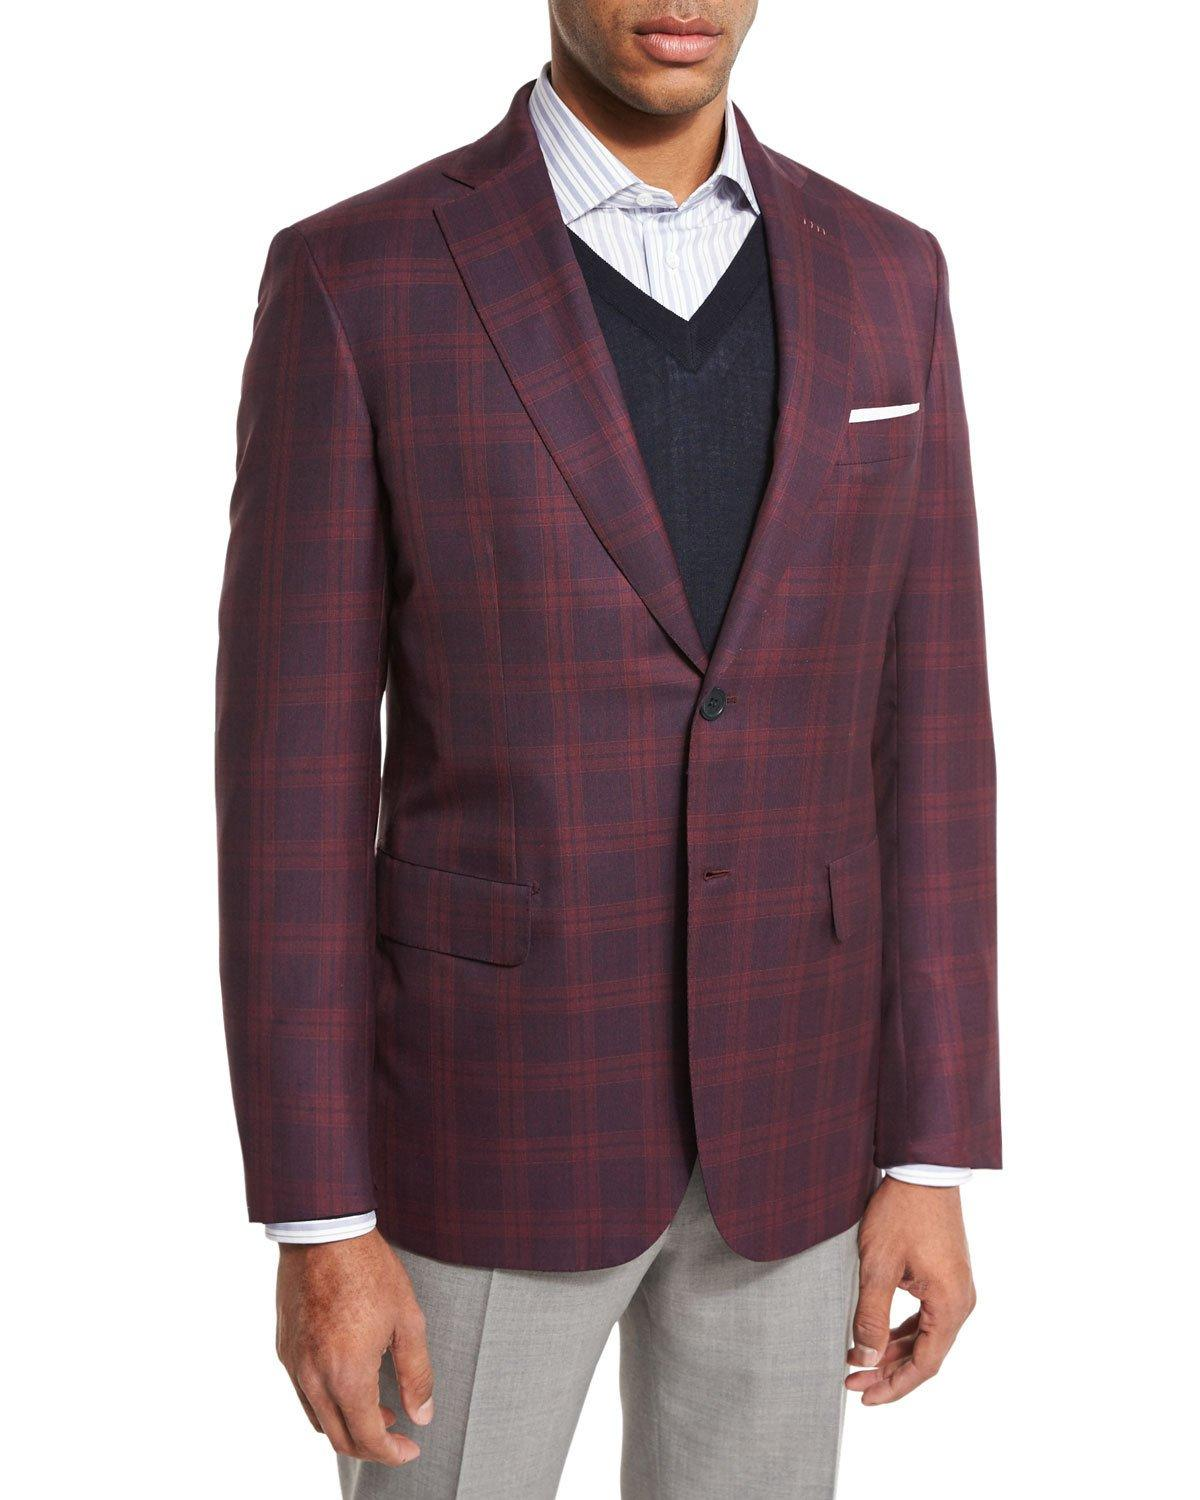 Brioni Plaid Two-button Sport Coat in Red for Men